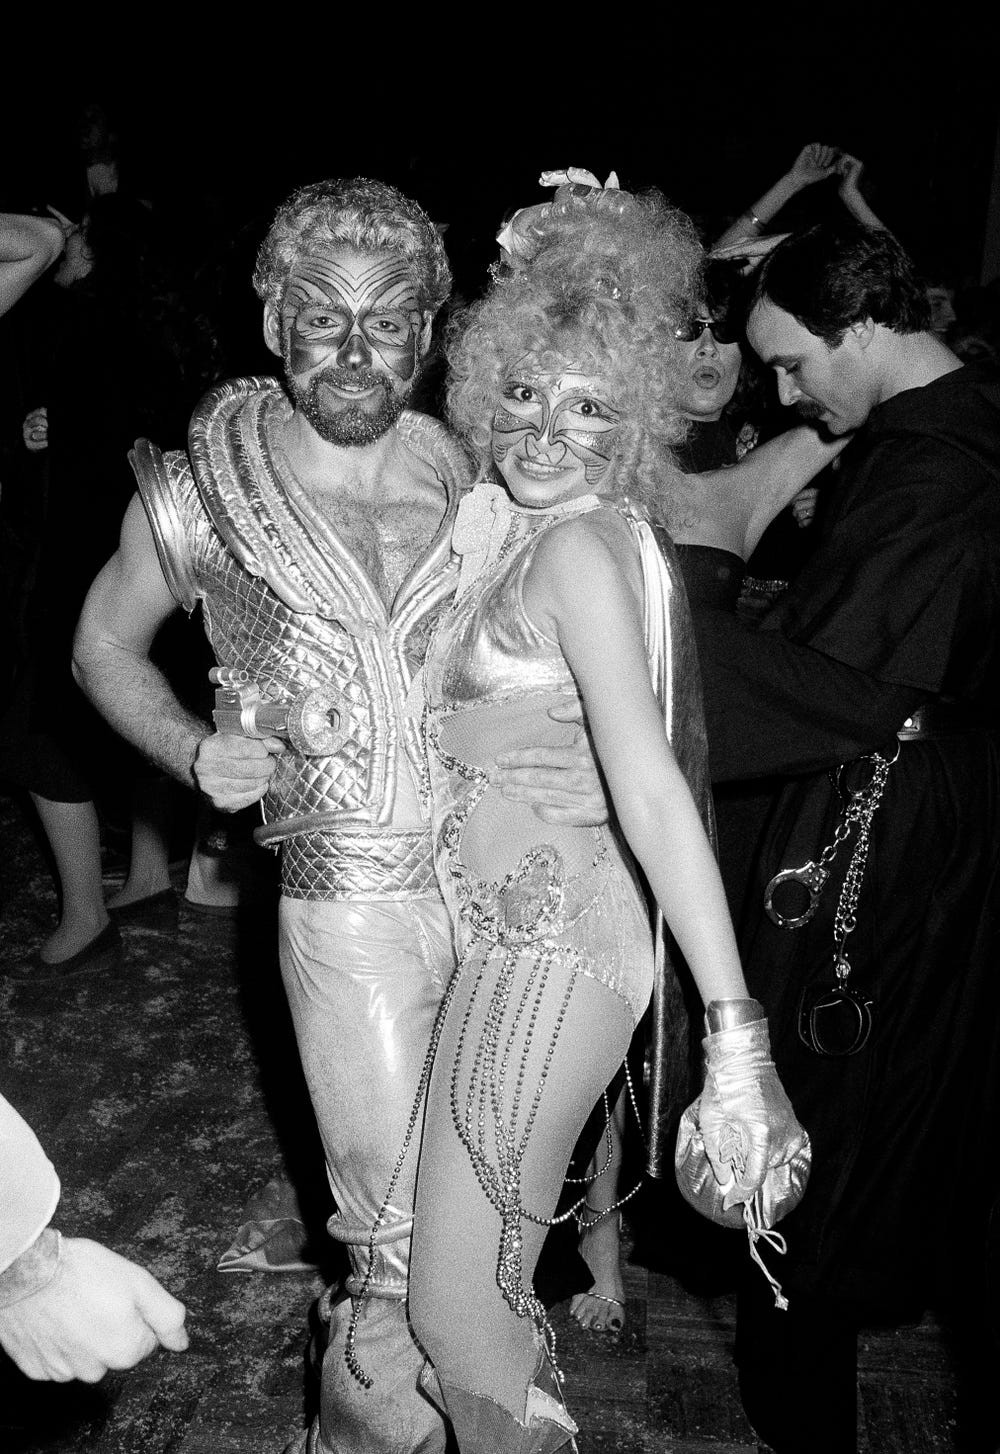 A man (left) and a woman (right) from Studio 54 close together—wearing shimmery clothes and face paint.